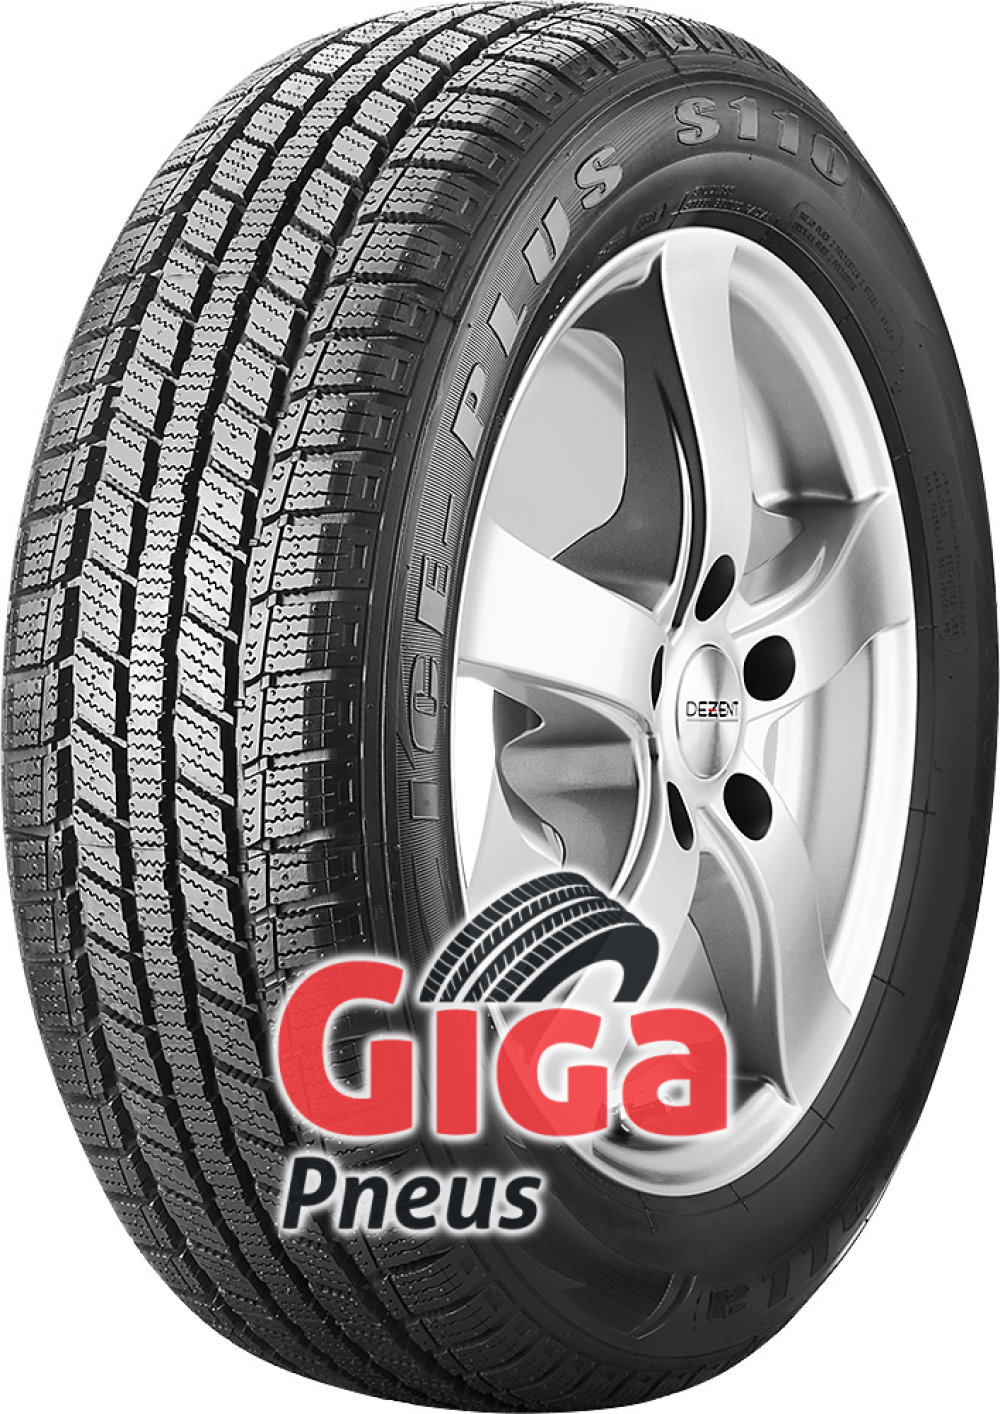 Rotalla Ice-Plus S110 ( 215/65 R16 98H )